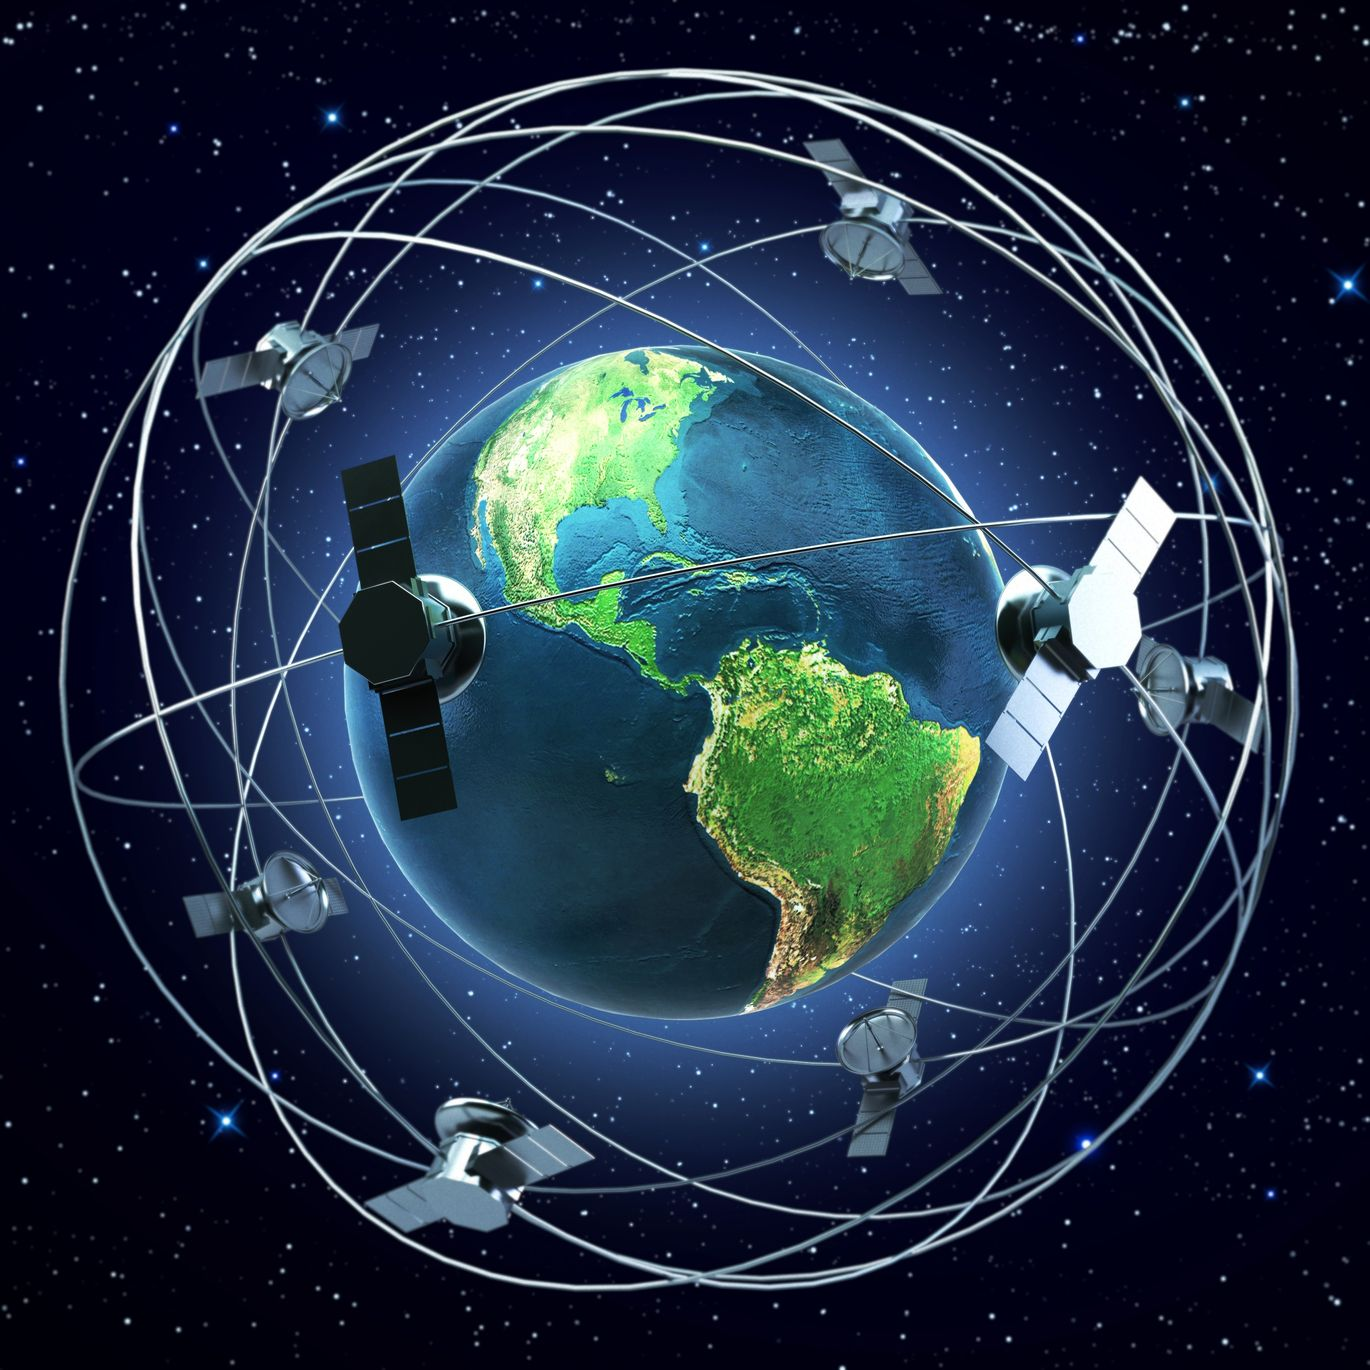 Satellites orbiting the Earth